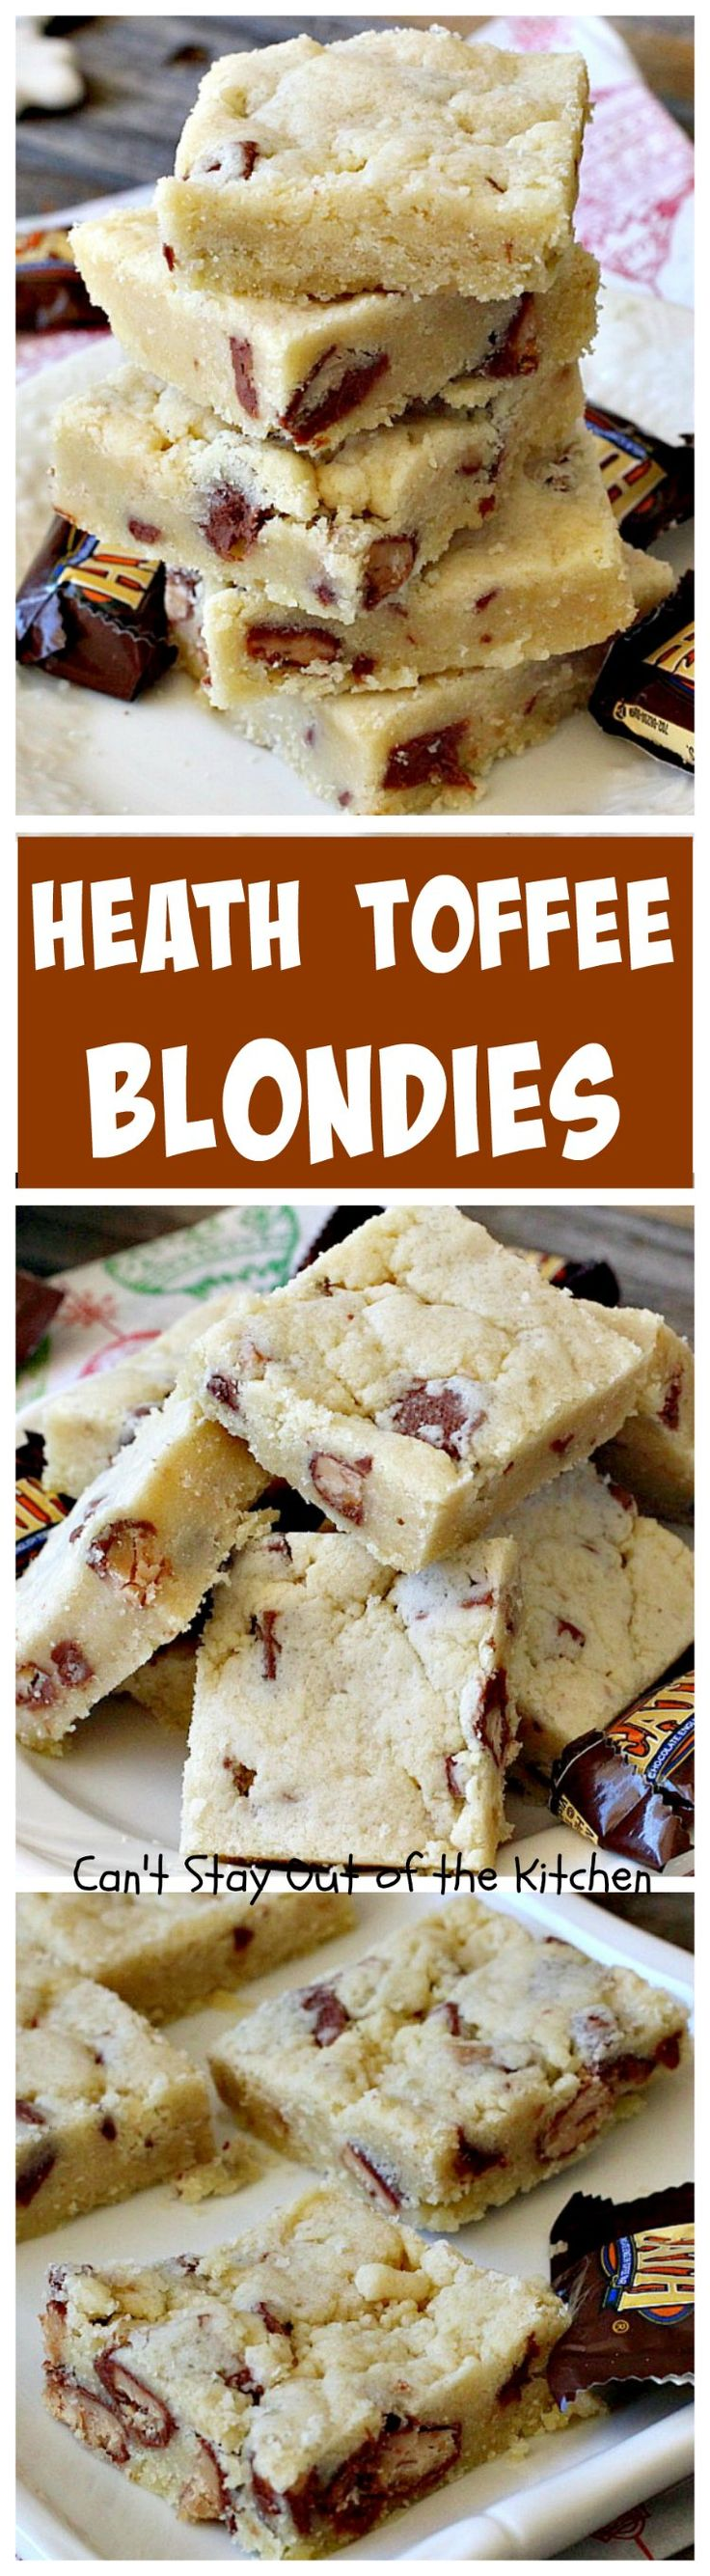 Heath Toffee Blondies | Can't Stay Out of the Kitchen | these amazing #cookies use #HeathToffeeBars so they're filled with #chocolate & #toffee. So, so good! #dessert